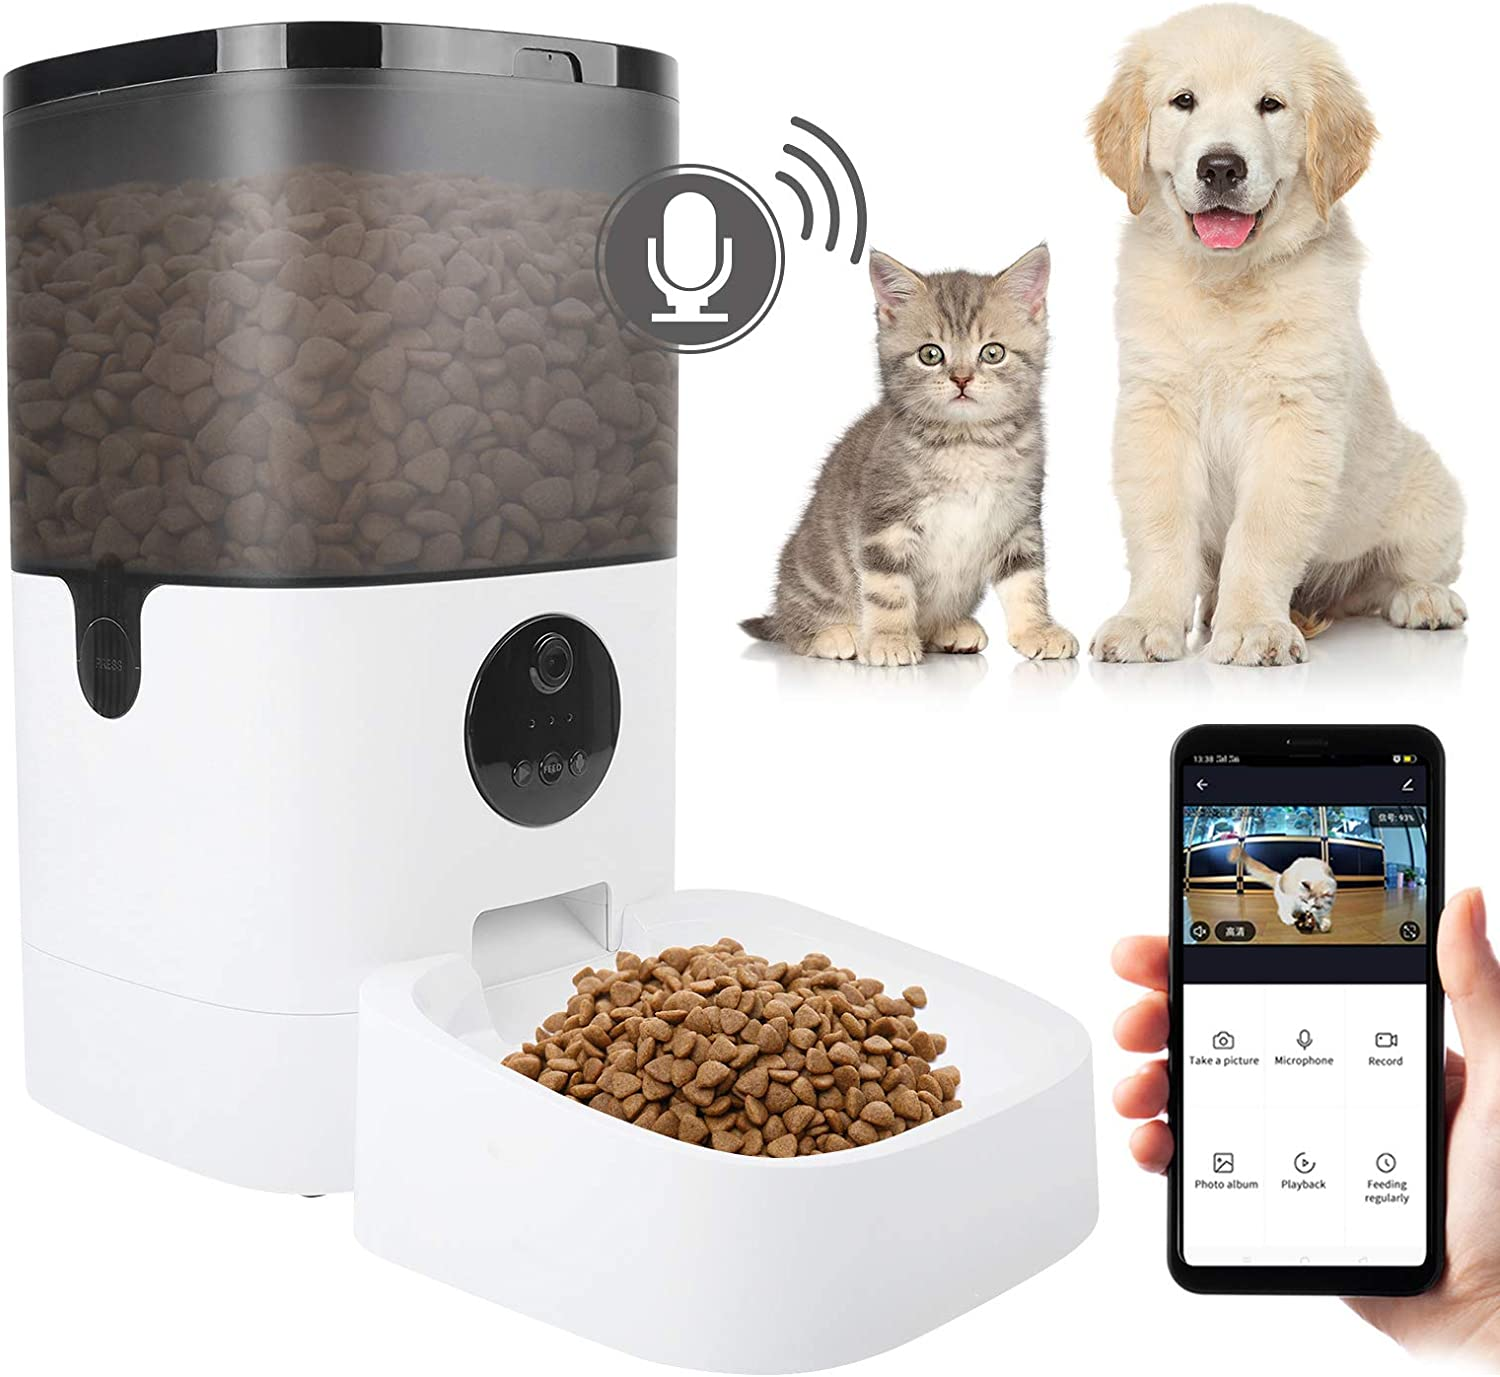 Lucky Monet 6L Smart Automatic Pet Cat Dog Feeder 8-Meal Auto Puppy Kitty Food Dispenser, 1080P HD Camera for Voice Video Recording, Timer Programmable, WiFi Enabled App Control for iPhone Android